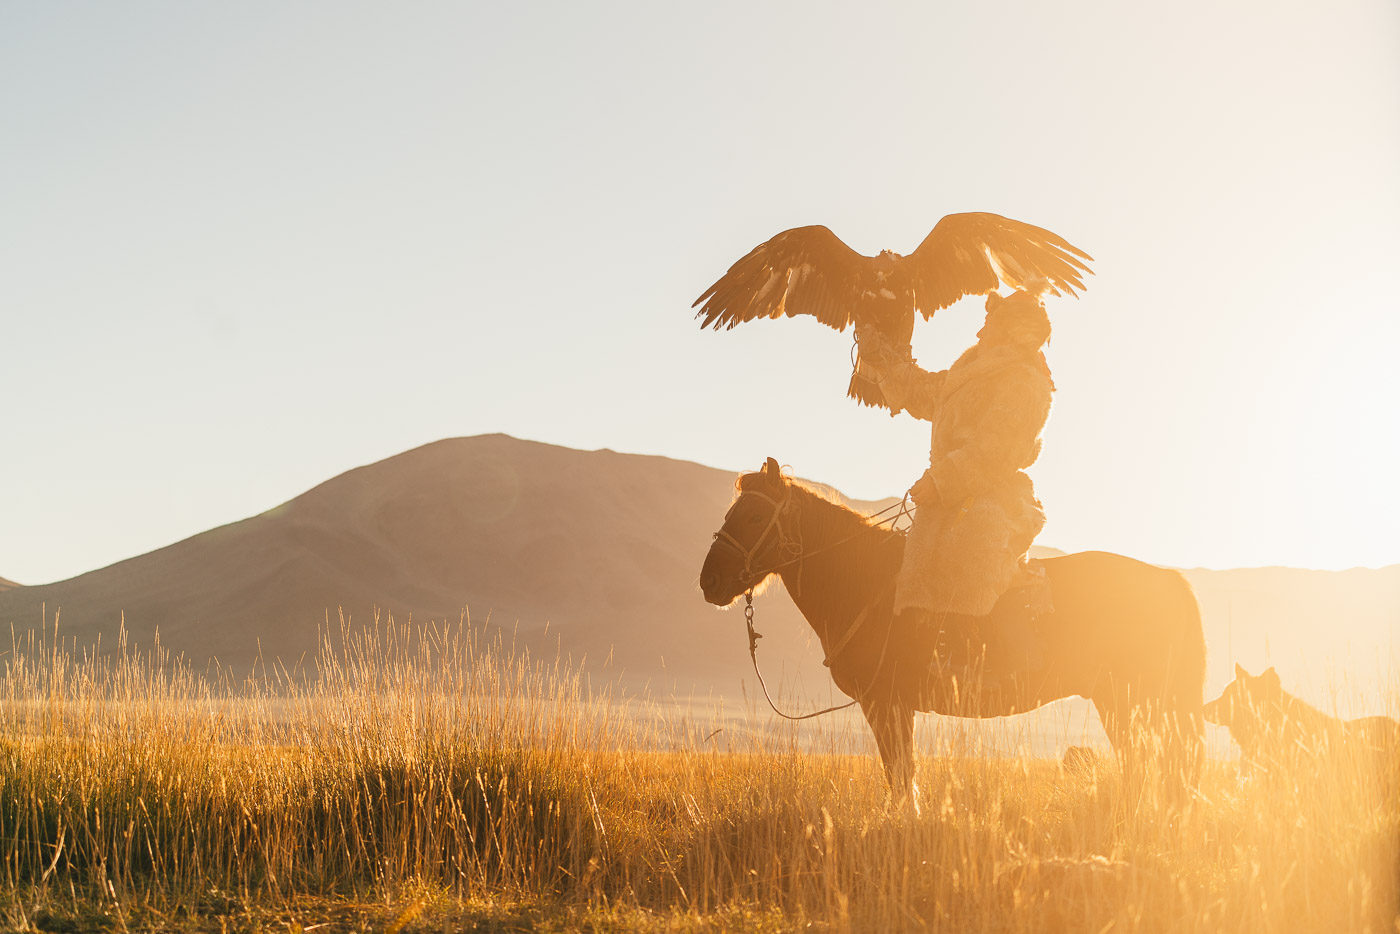 kazakh eagle hunting on a horse during sunset in Mongolia